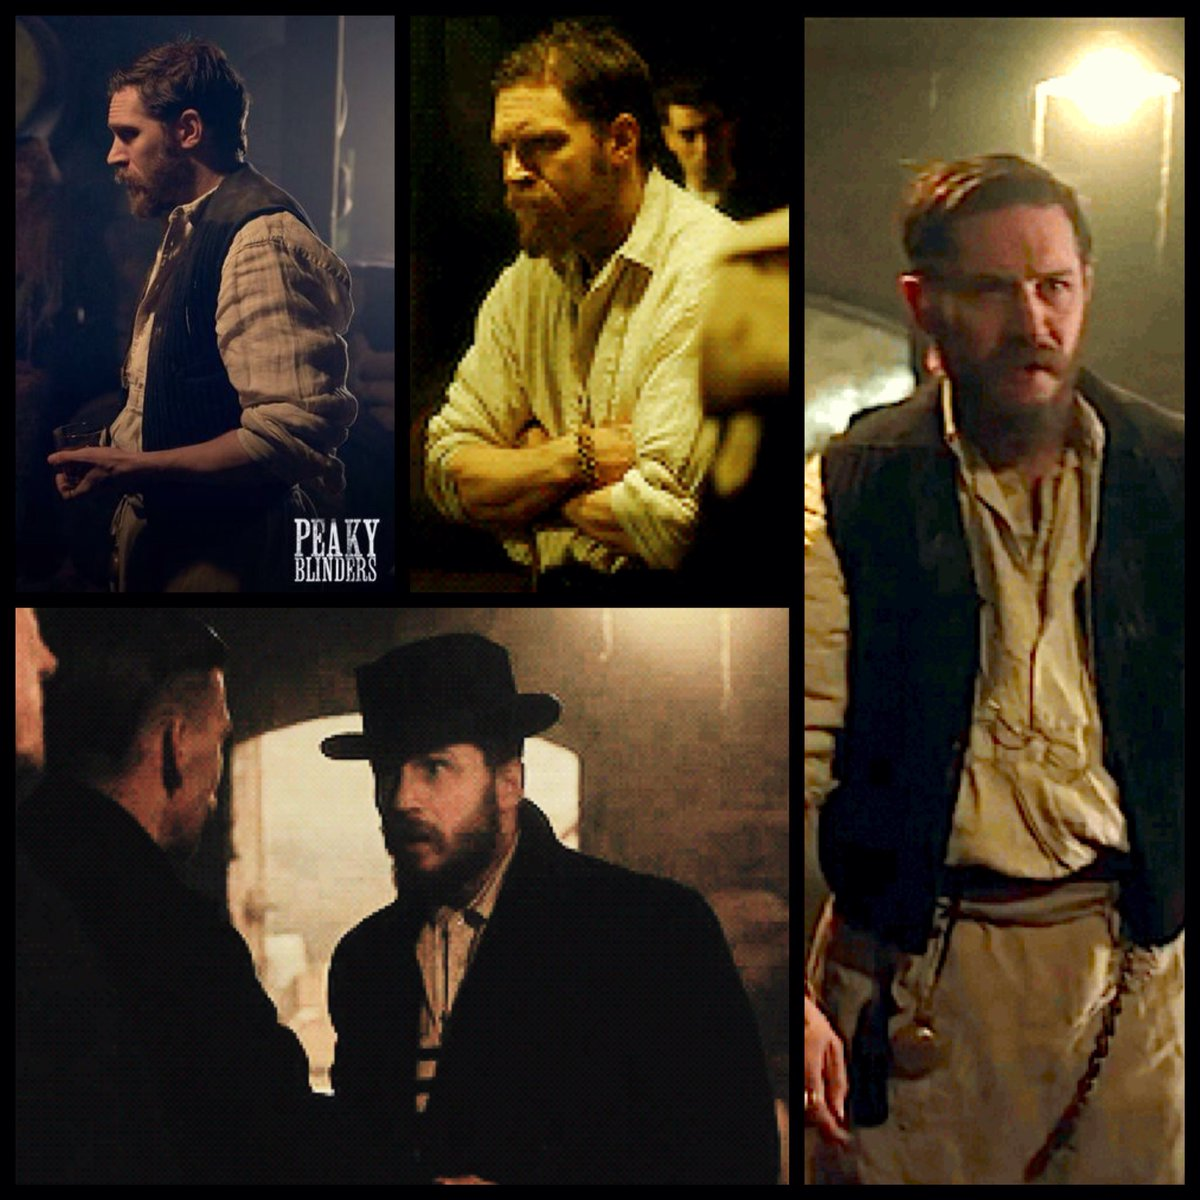 Alfie Solomons Can&#39;t wait to see you! #TomHardy #PeakyBlinders<br>http://pic.twitter.com/2c9ifG13y9